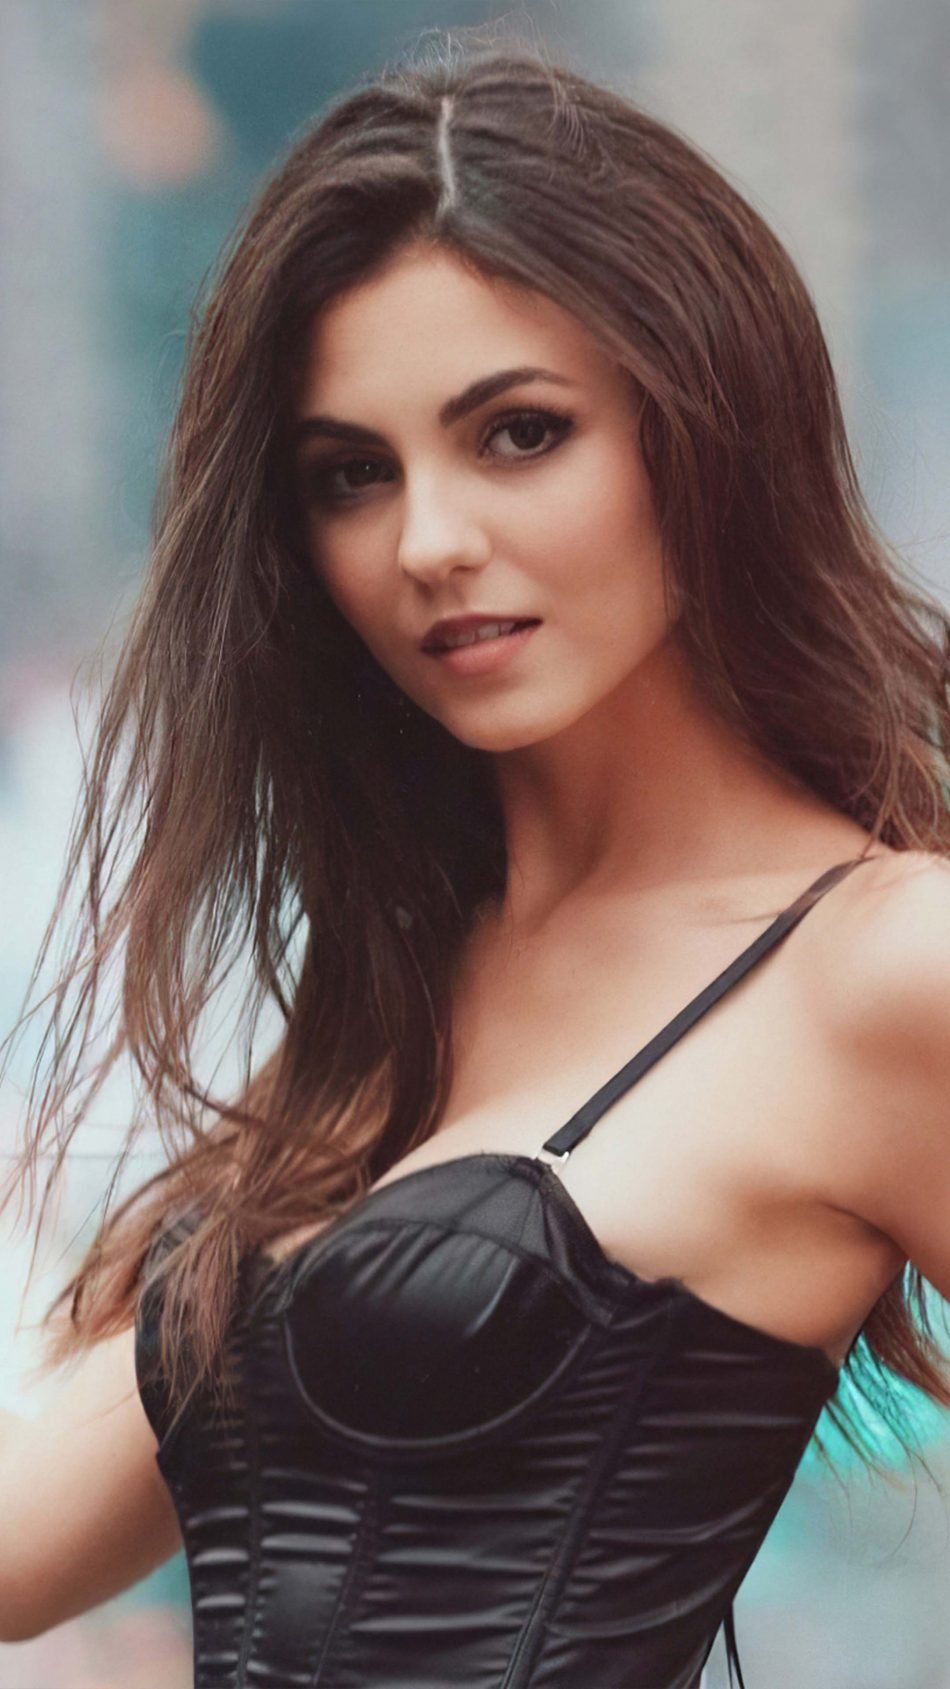 Victoria Justice 2020 4K Ultra HD Mobile Wallpaper